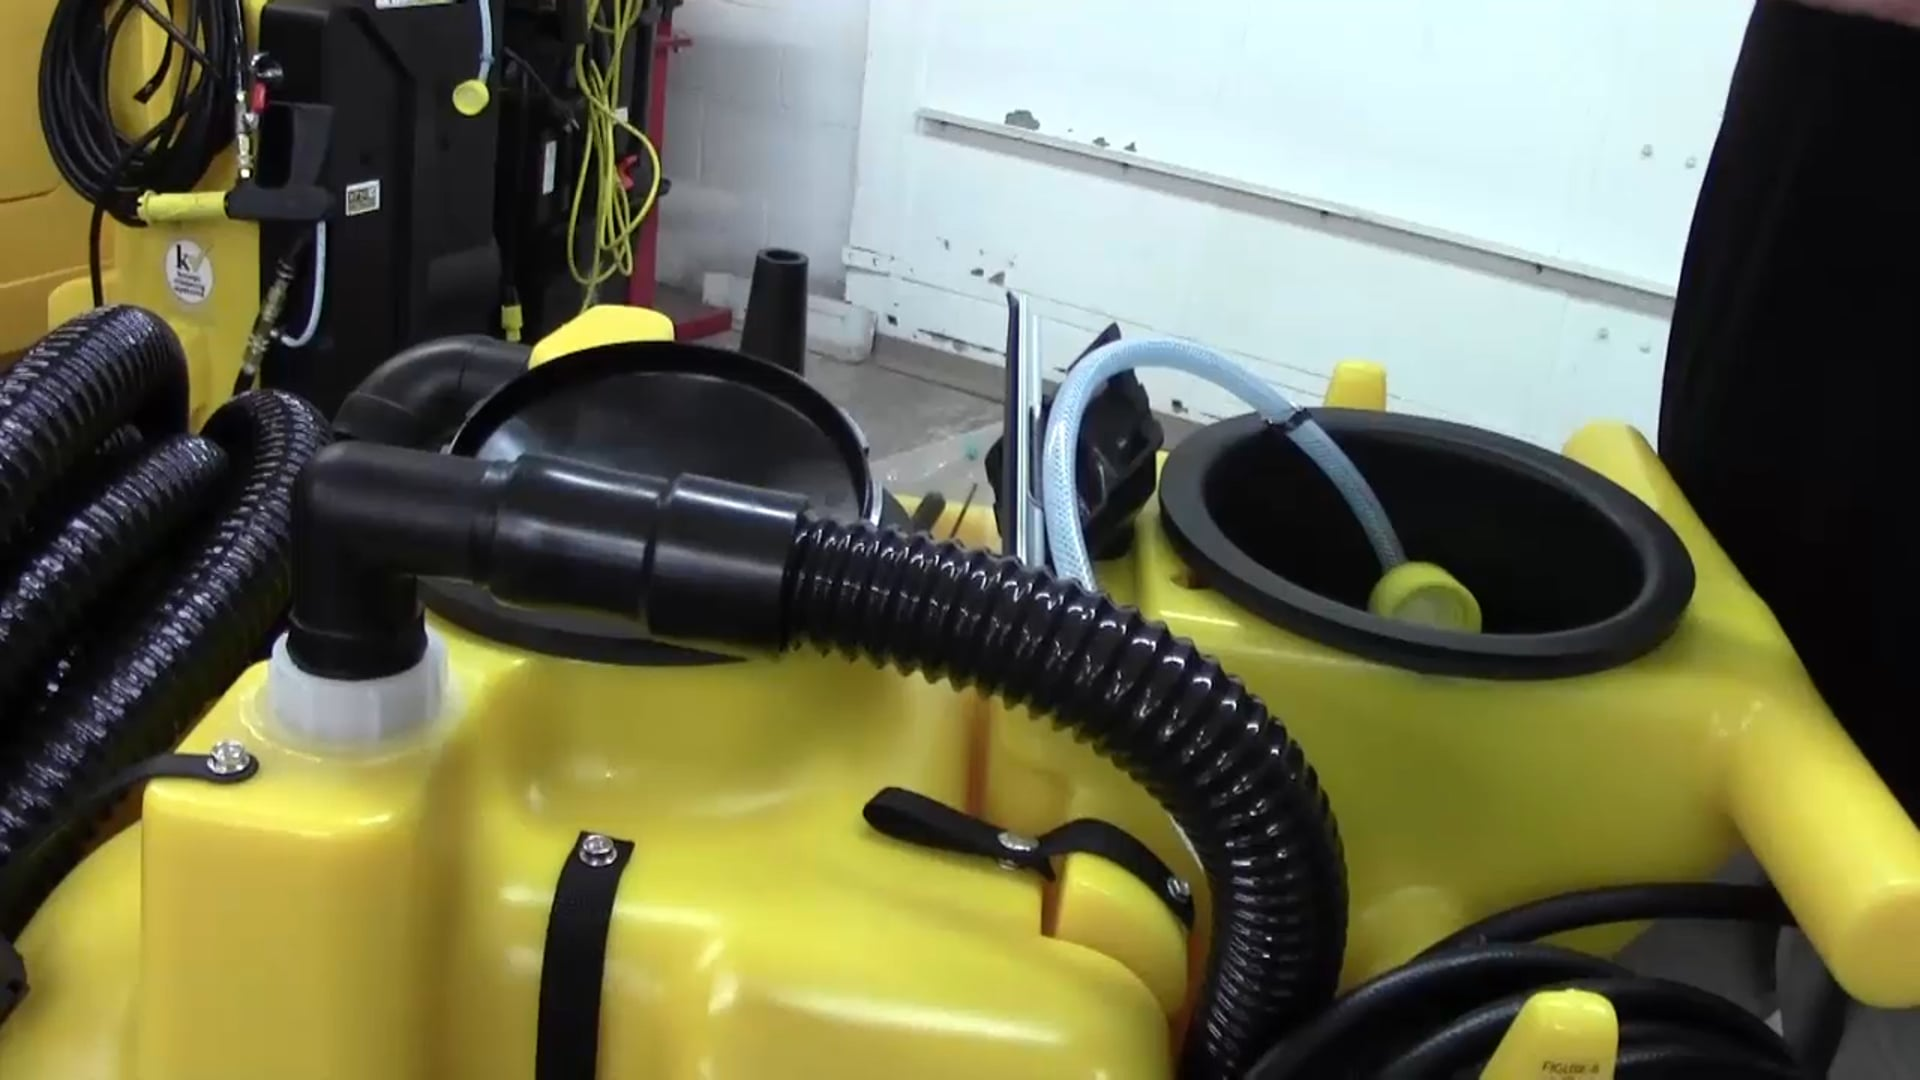 Vacuum Troubleshooting